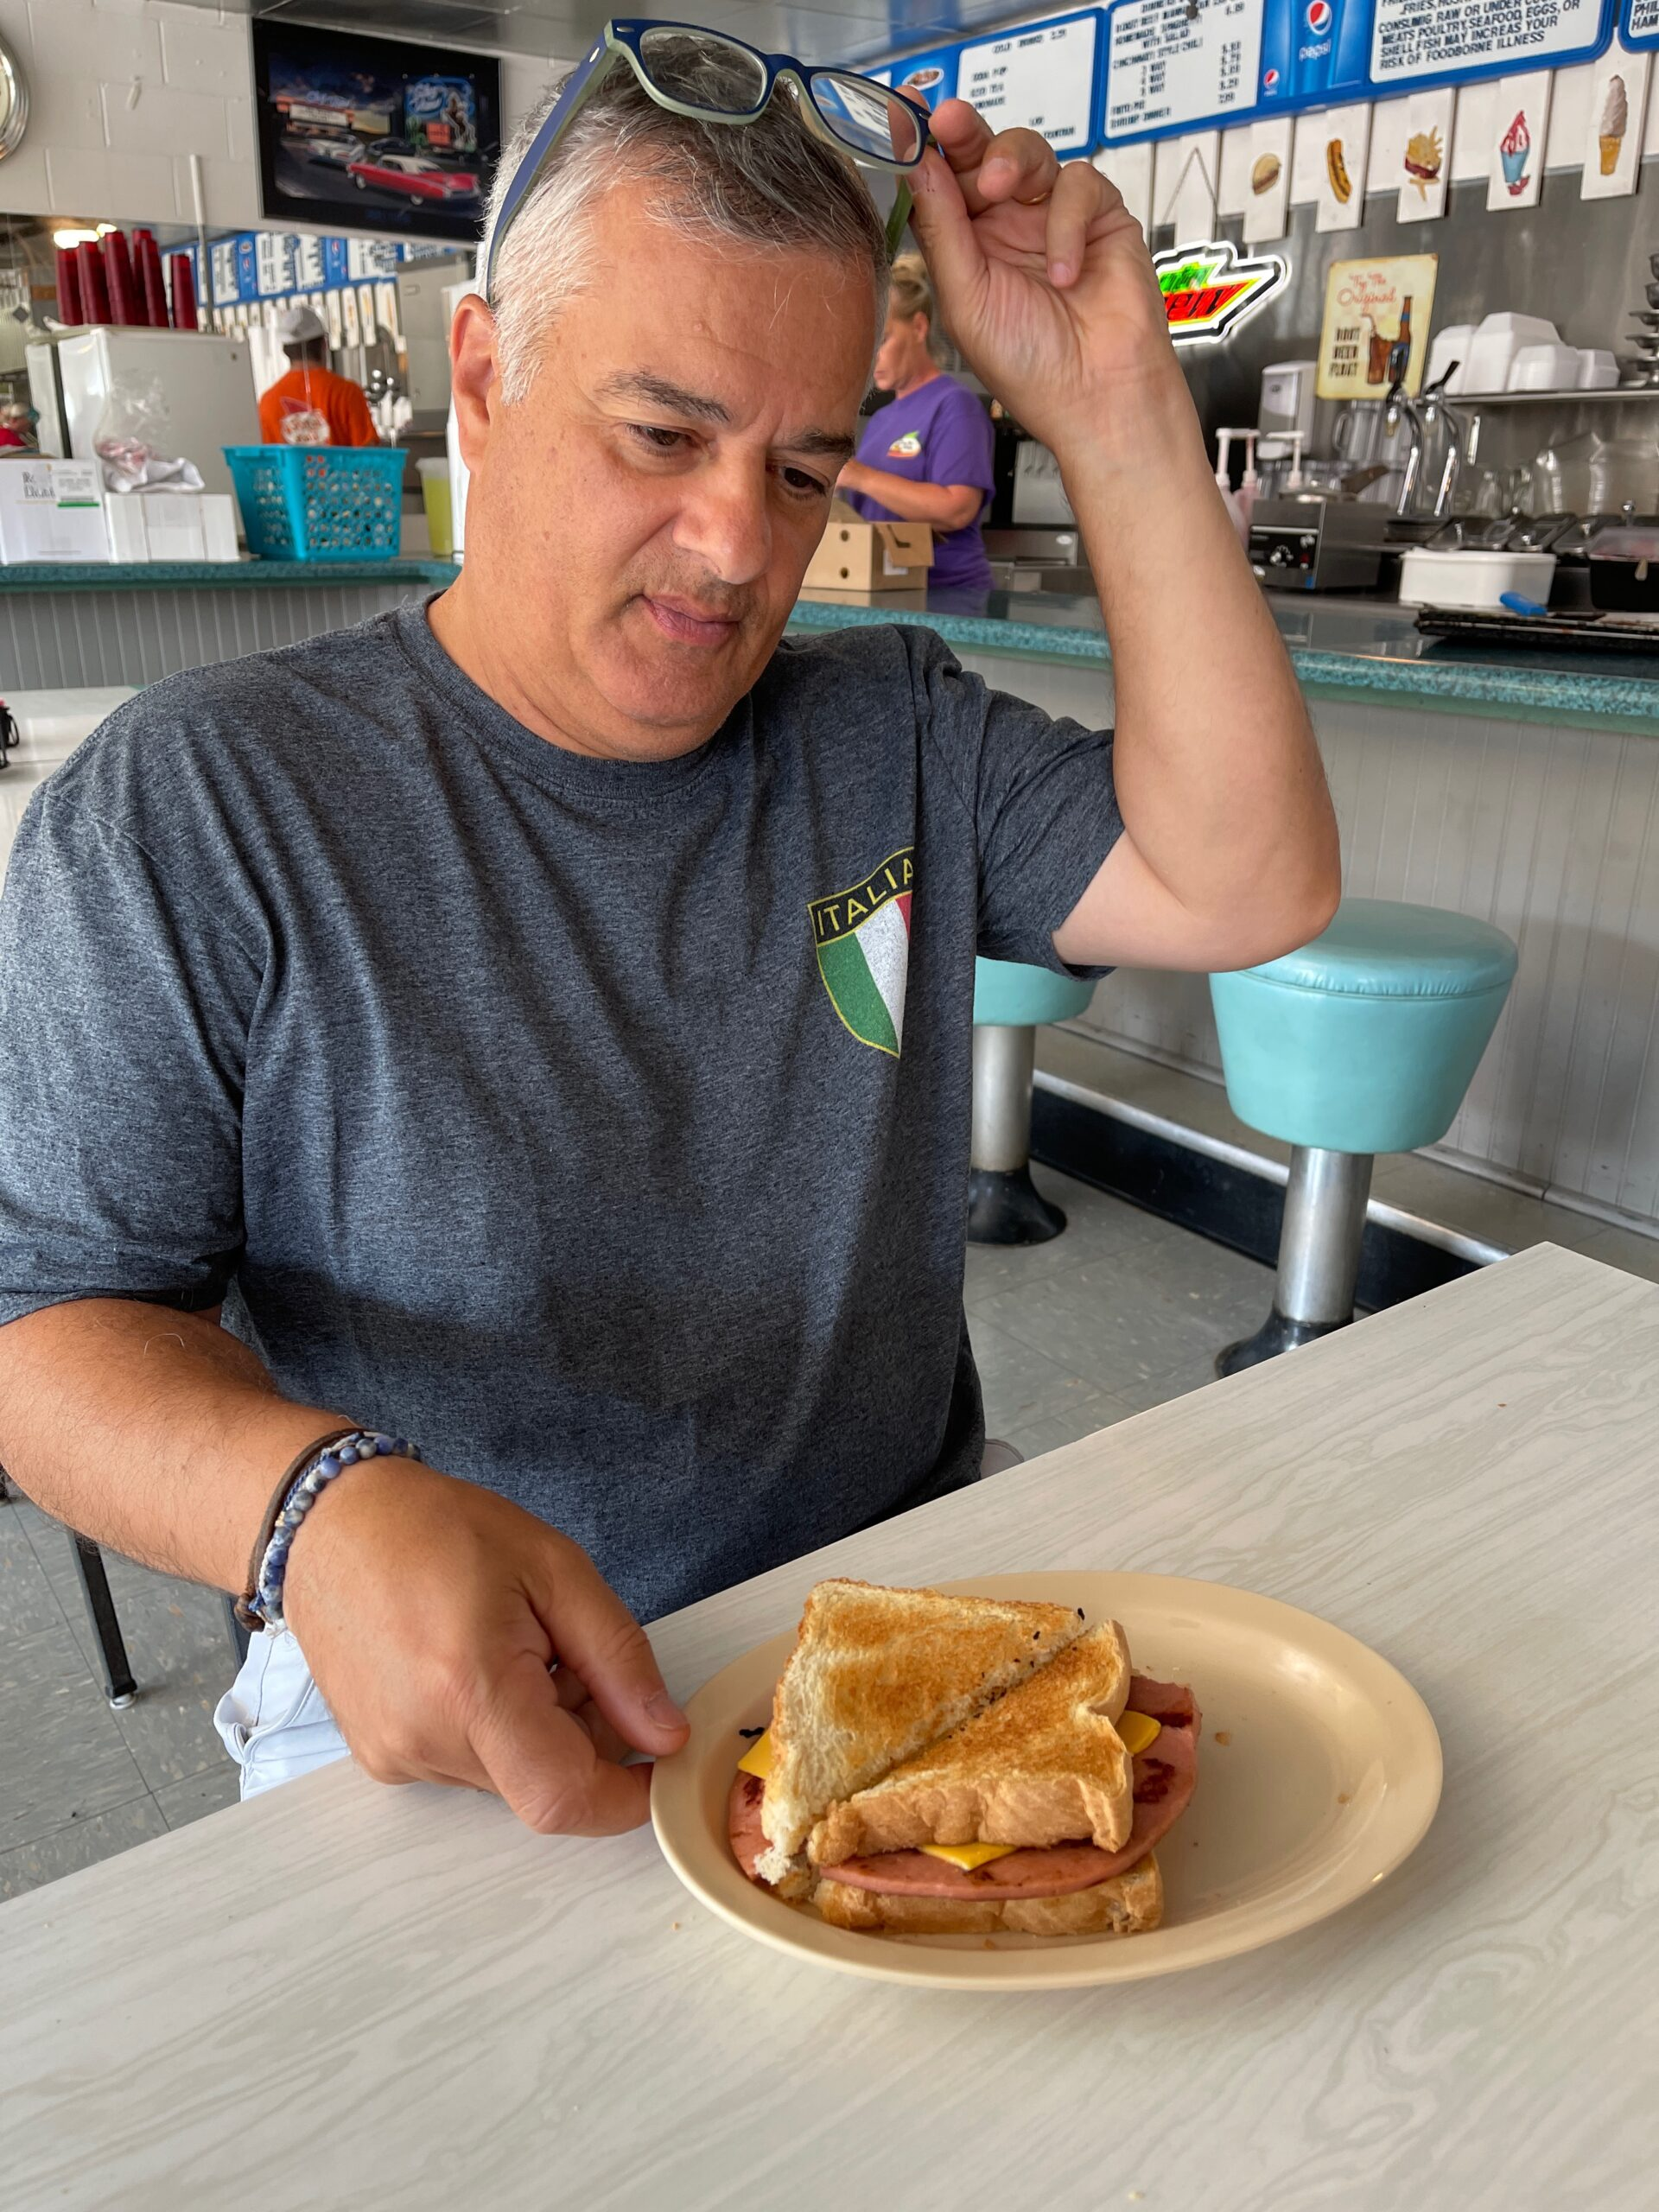 Small towns in KY - trying a fried bologna sandwich in Whitley City.